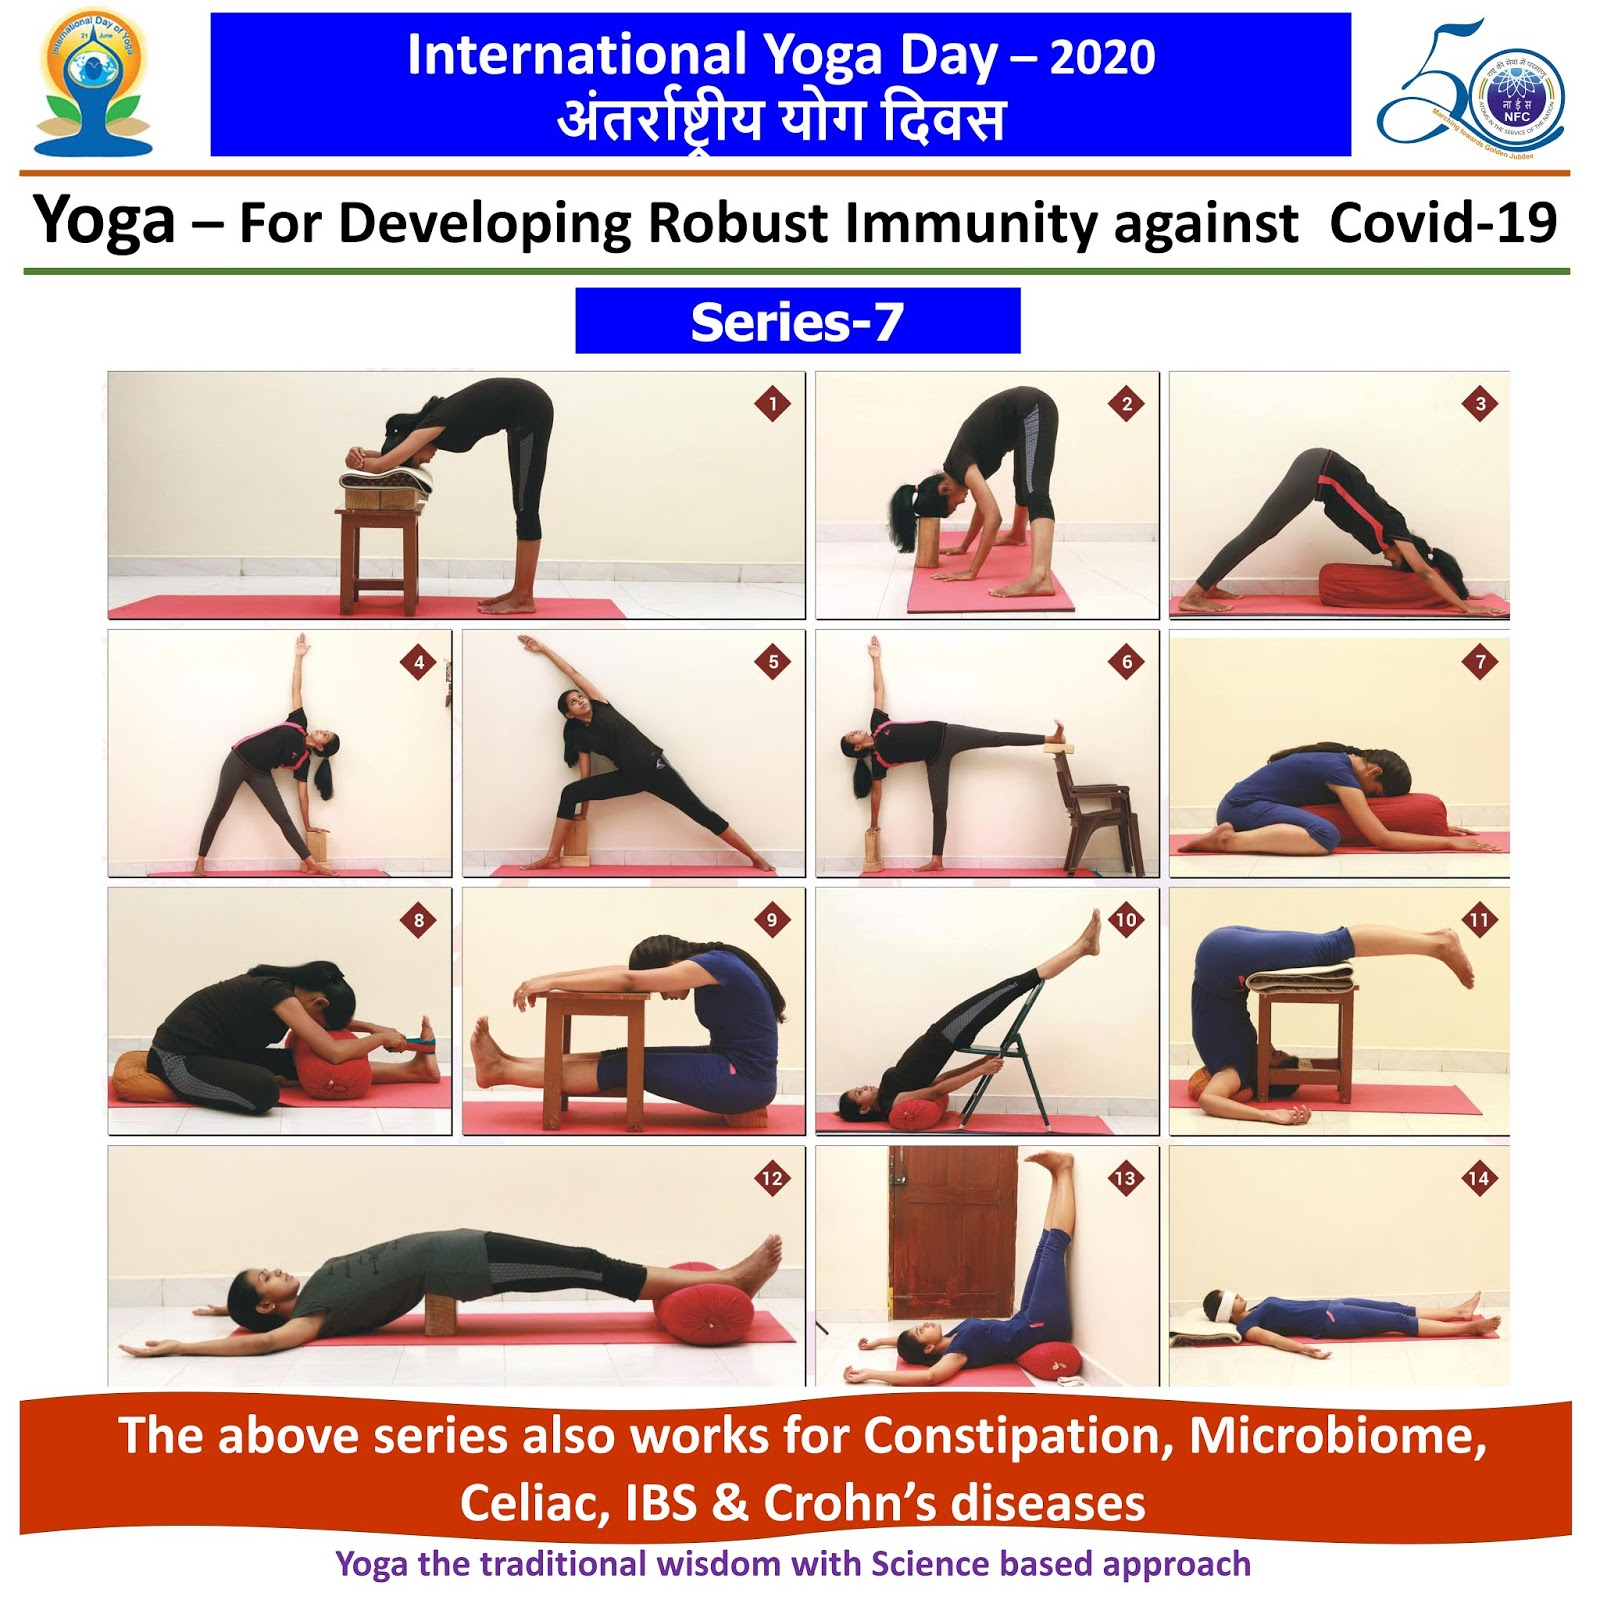 Happy International Yoga Day ... This series also works for Constipation, Microbiome, Celiac, IBS & Crohns diseases